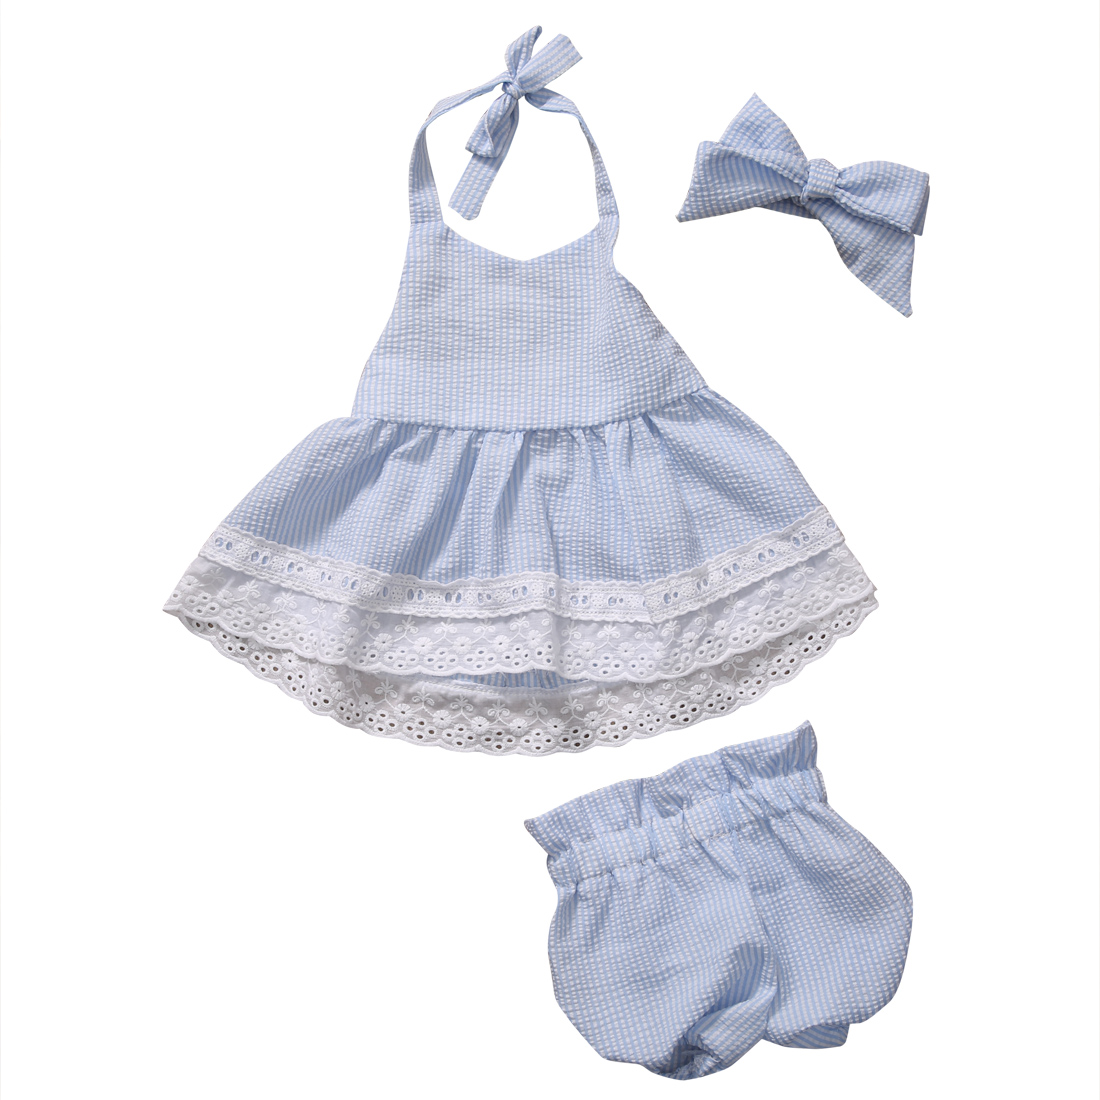 2pcs Newborn Baby Girls Bowknot Clothes 2017 Summer Striped Vest Tops + Bottoms Outfit Bebek Giyim Toddler Kids Clothing Set girls tops cute pants outfit clothes newborn kids baby girl clothing sets summer off shoulder striped short sleeve 1 6t